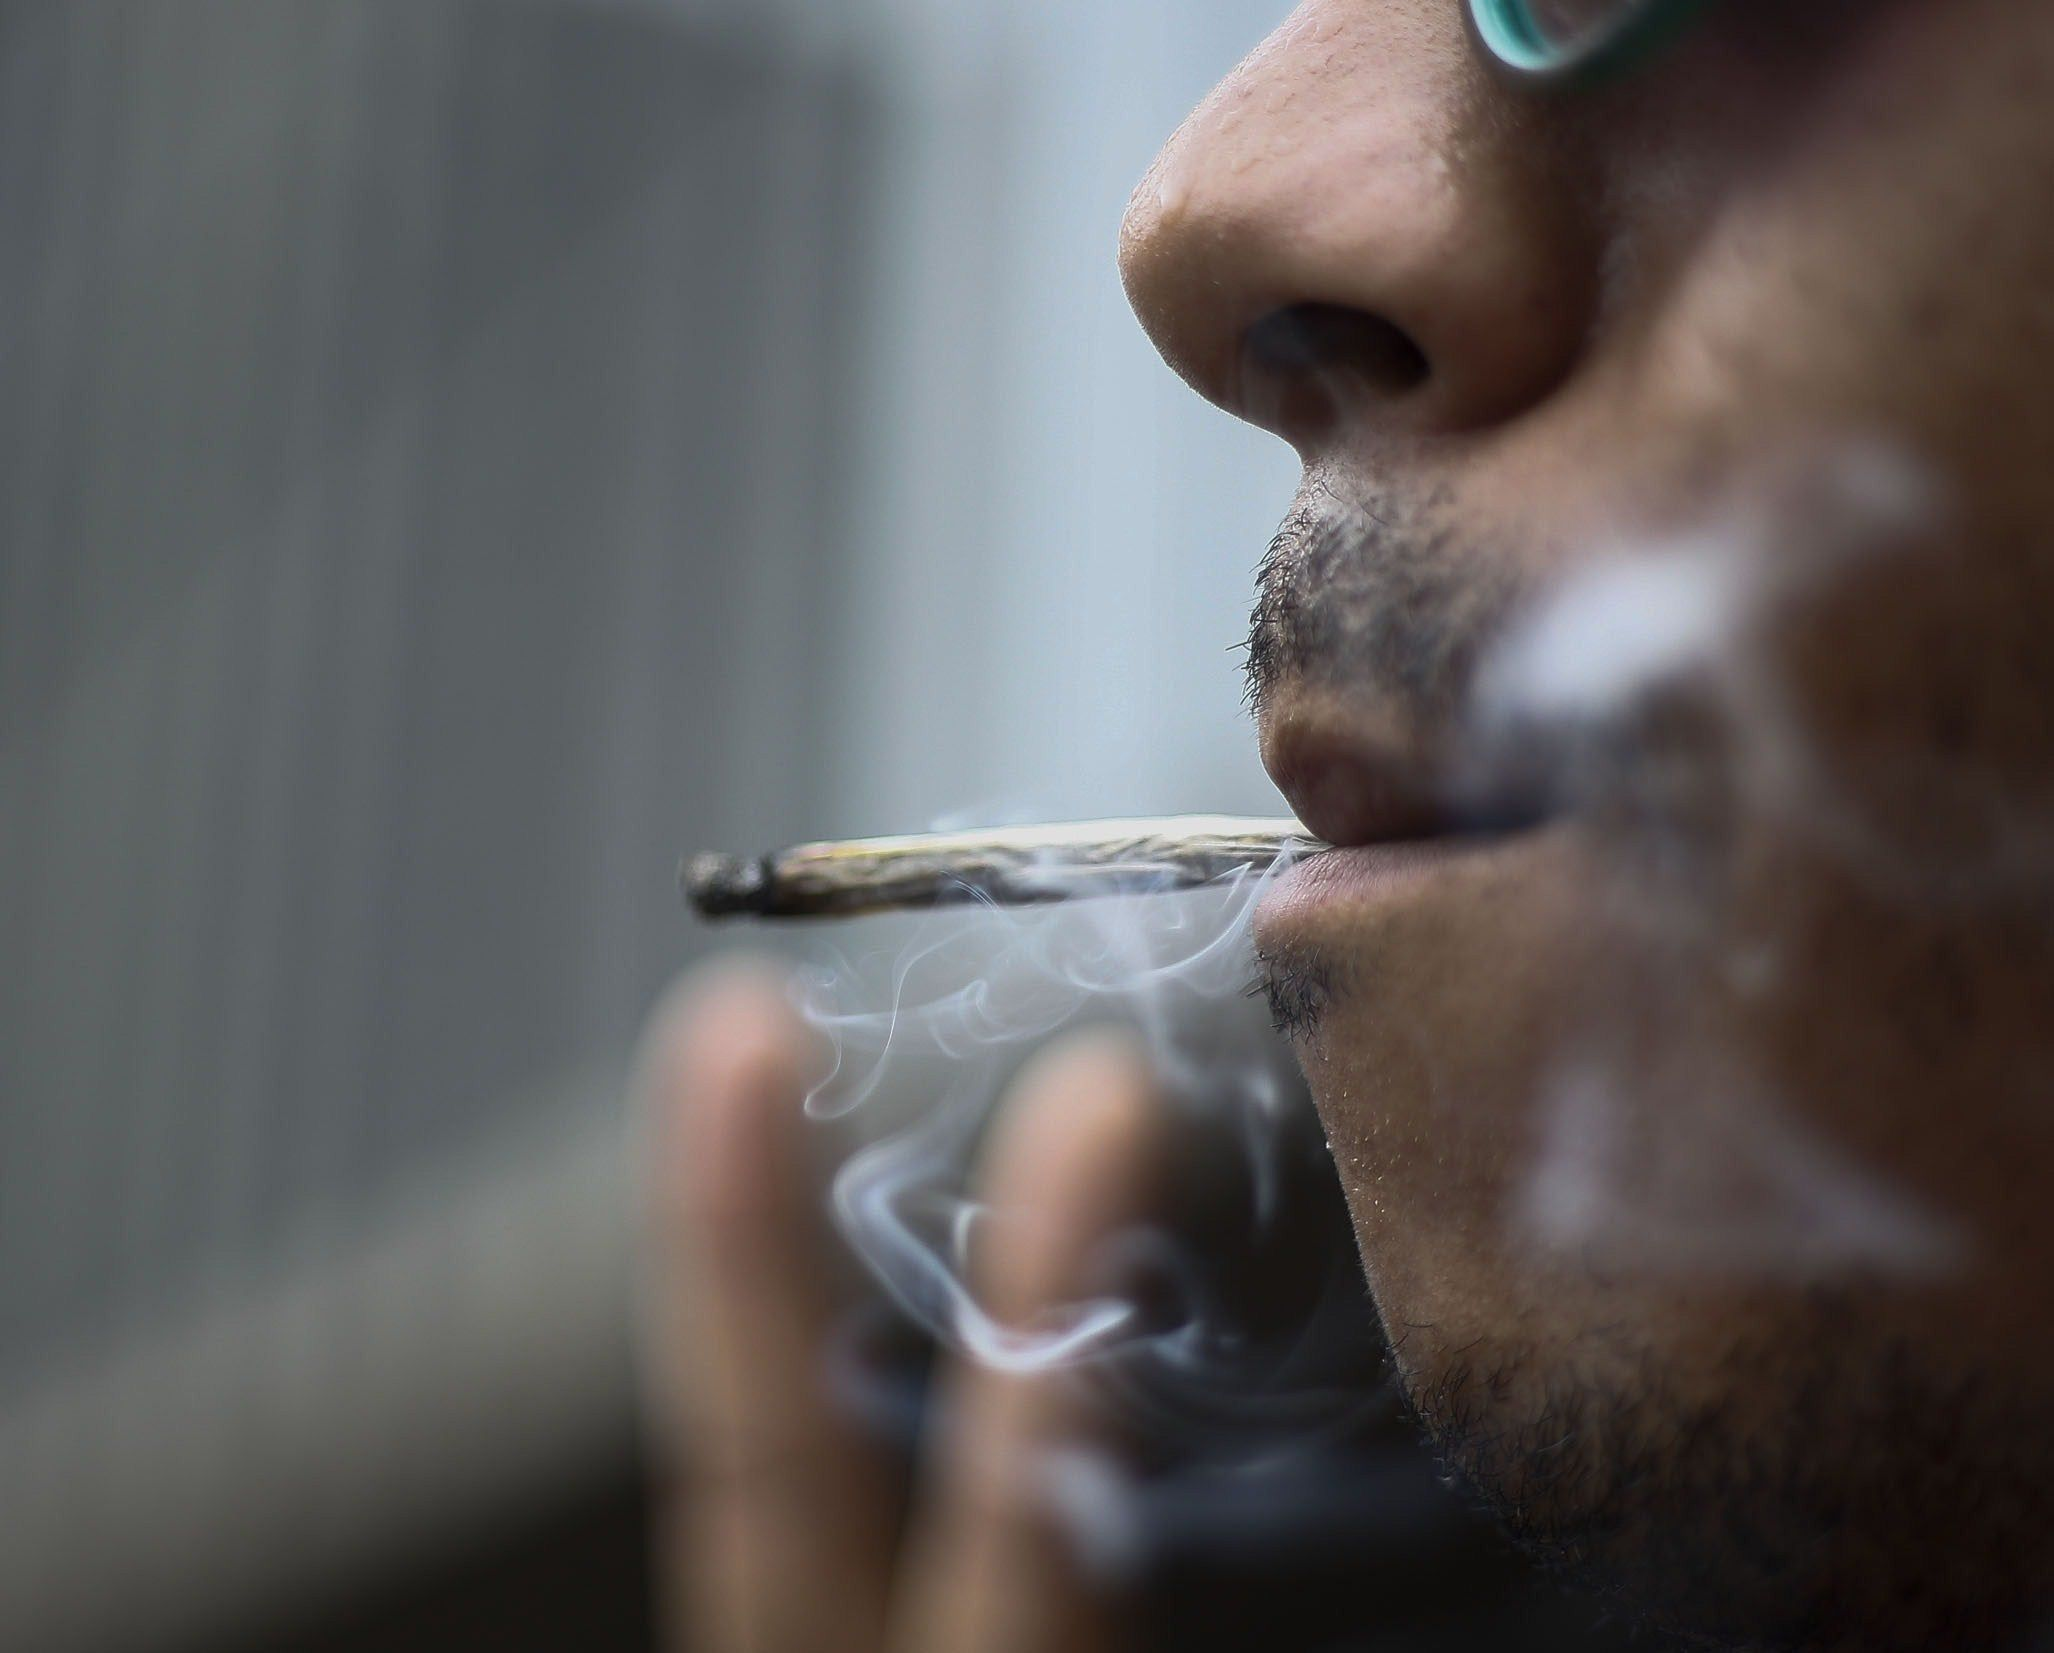 Smoking cannabis every day can distort brain activity, research suggests